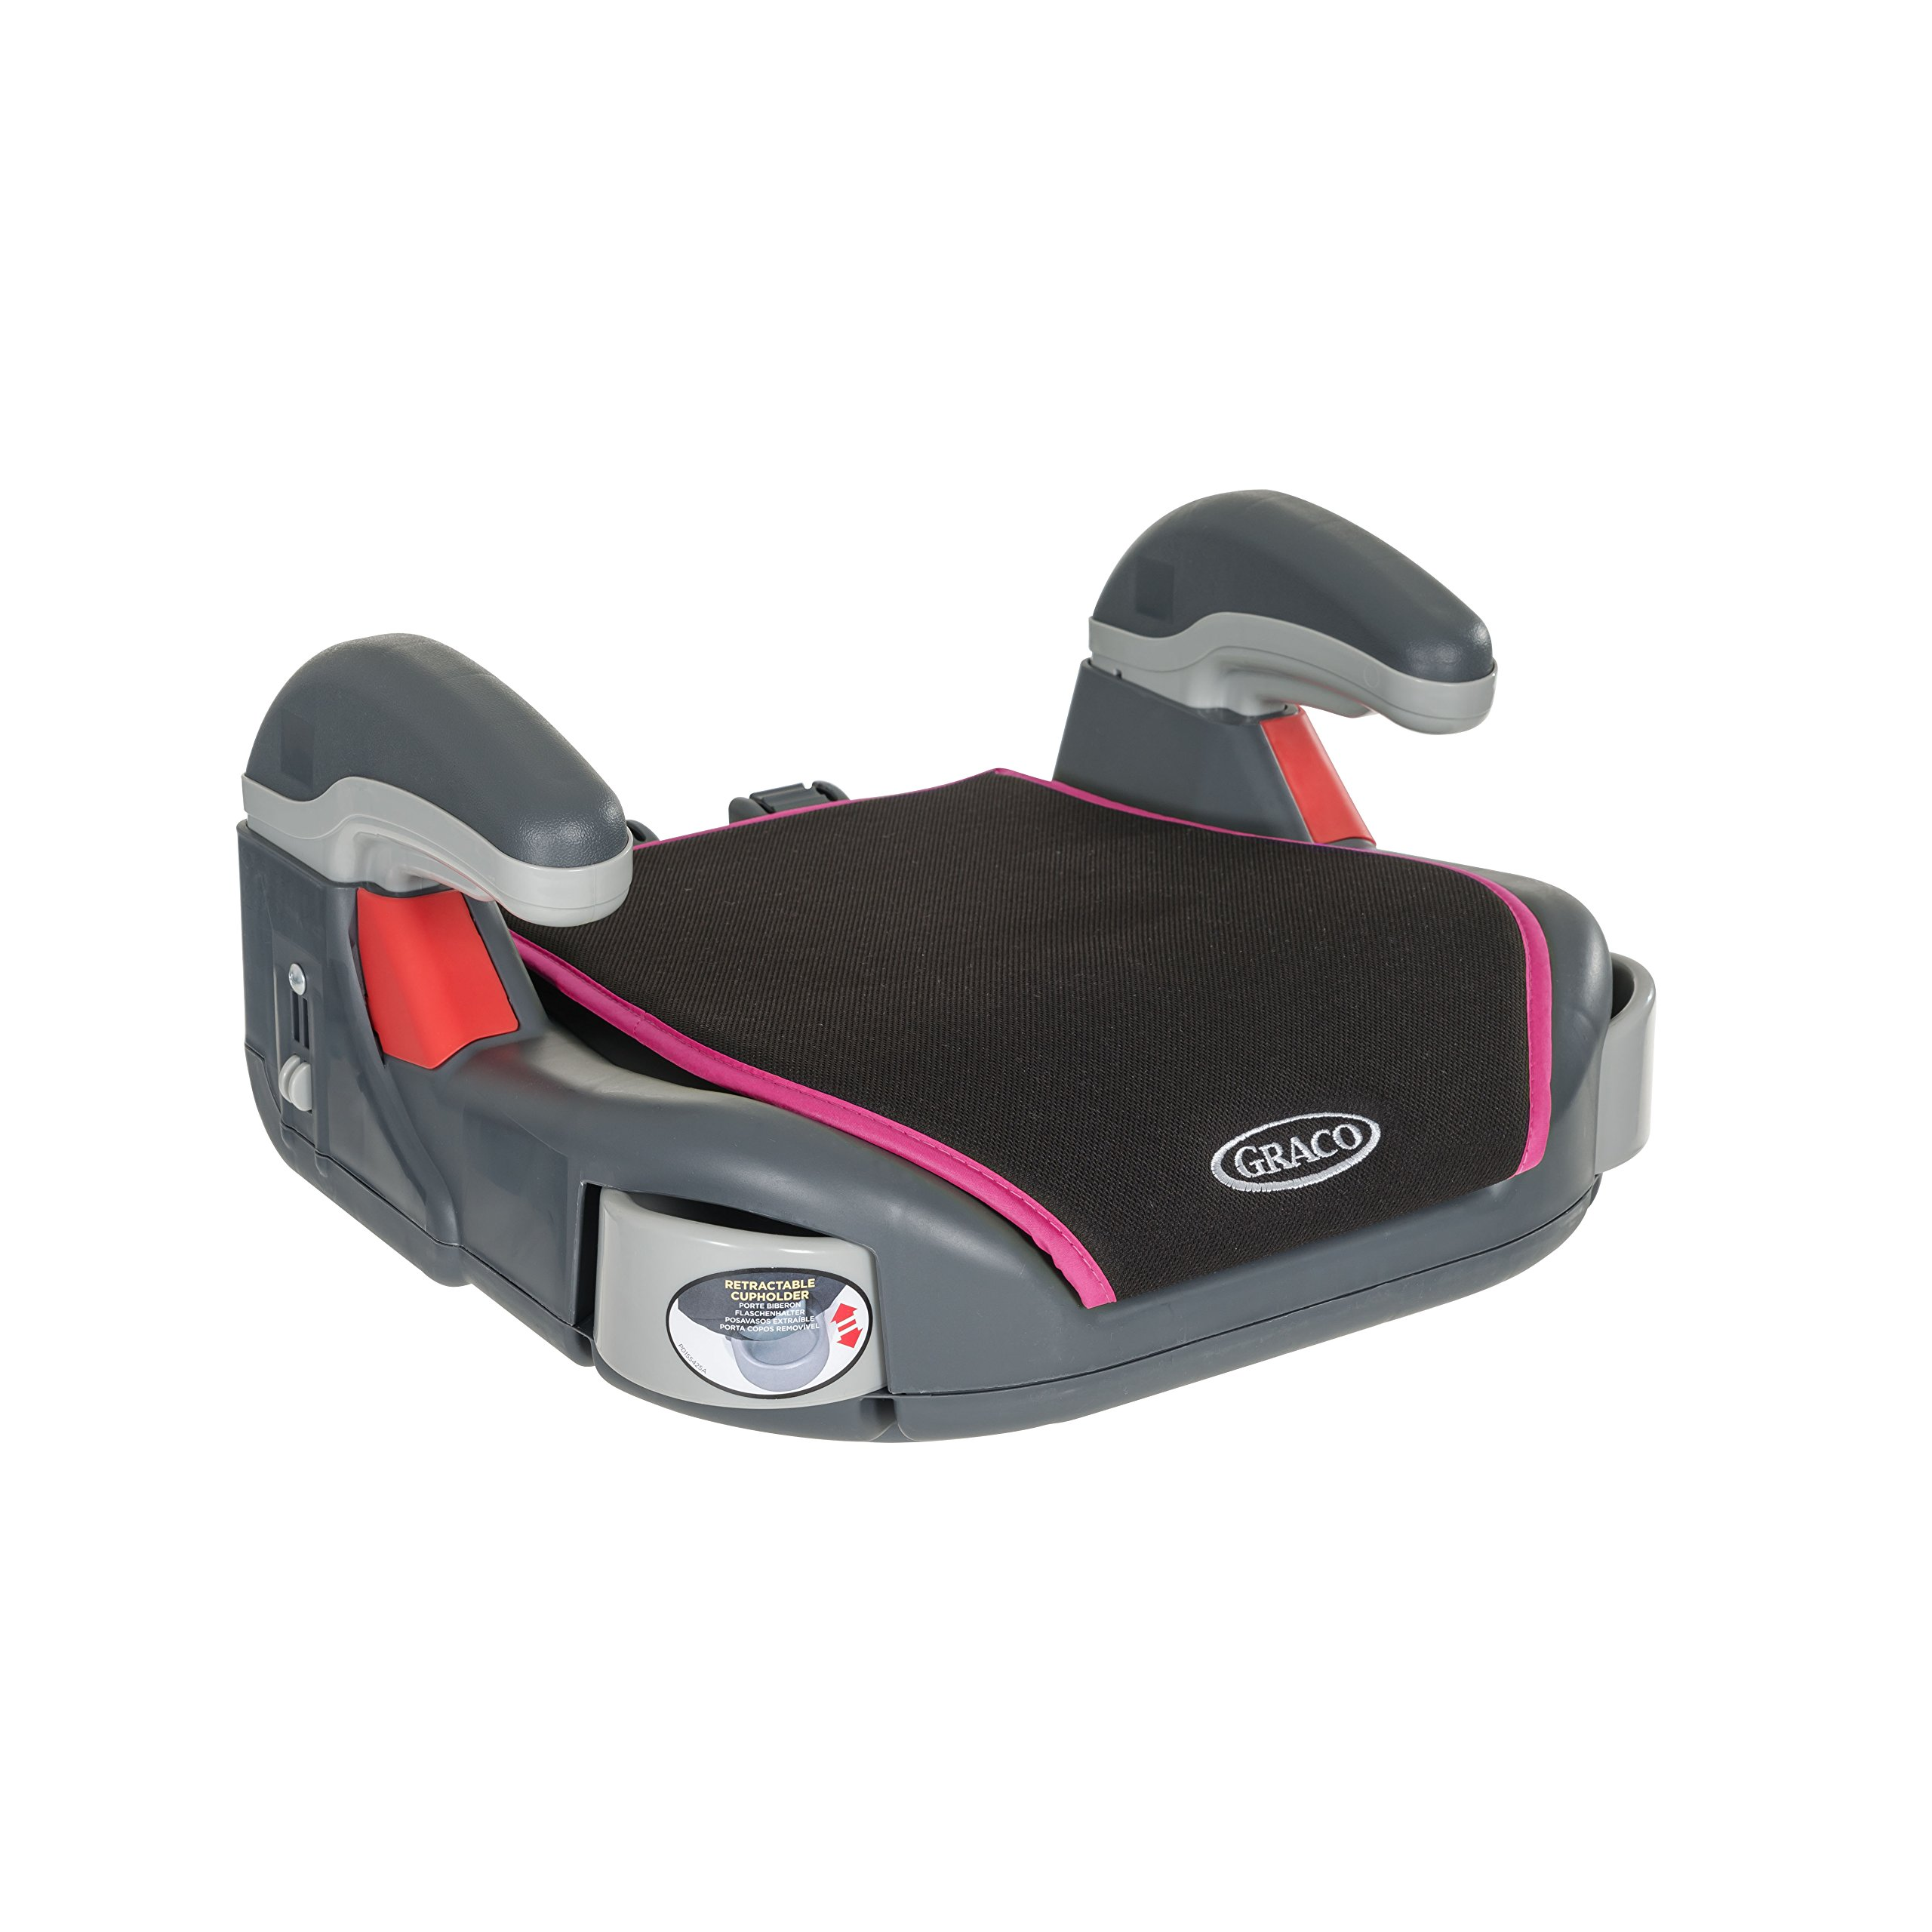 Graco Sport Booster Car Seat